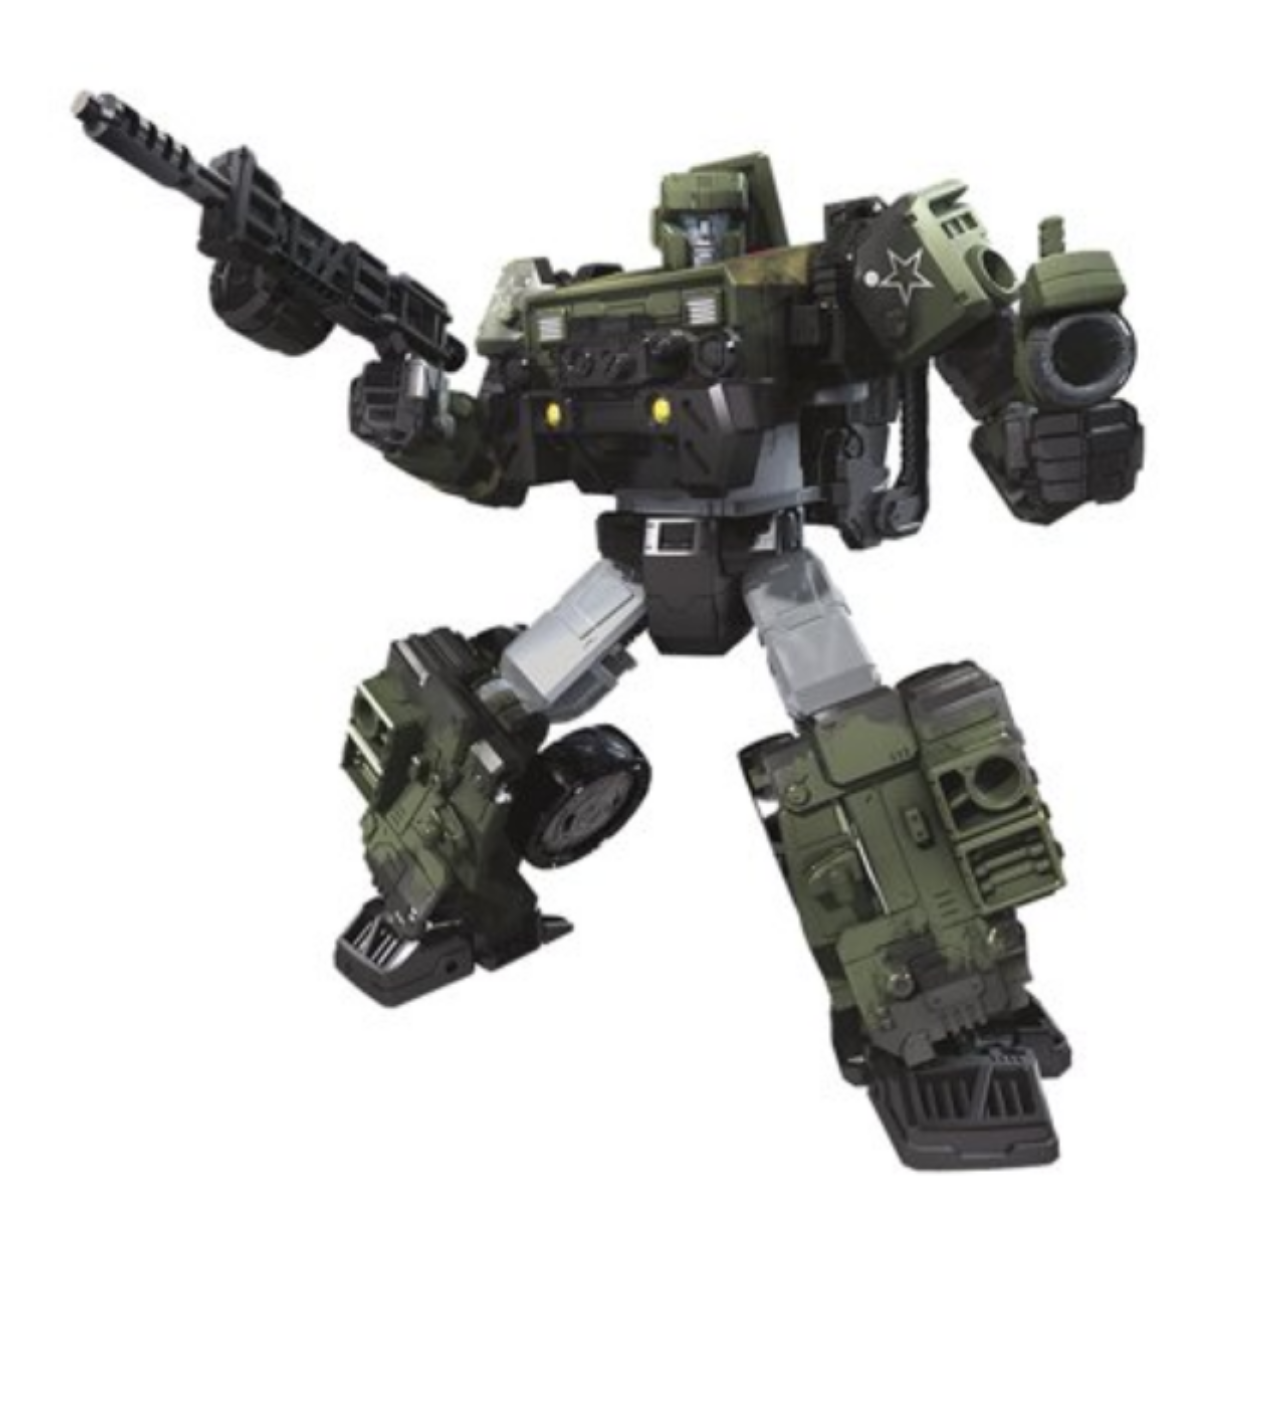 Transformers News: UK Listings Show Exclusive Siege Reissues, New Transformers Battlefield Hotlink and More